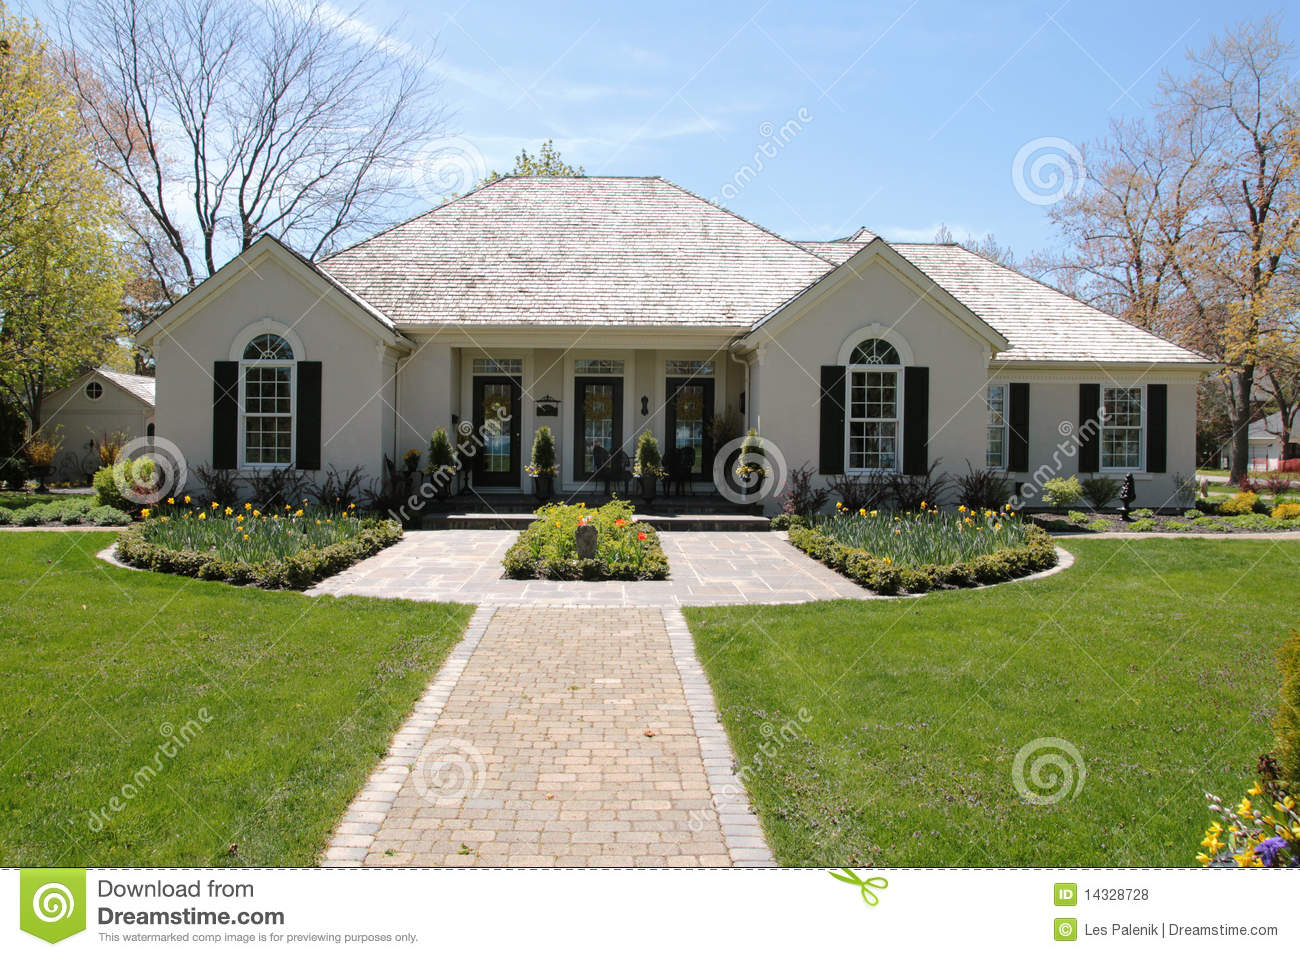 Nice house with symmetrical landscaping stock photo for Nice house picture